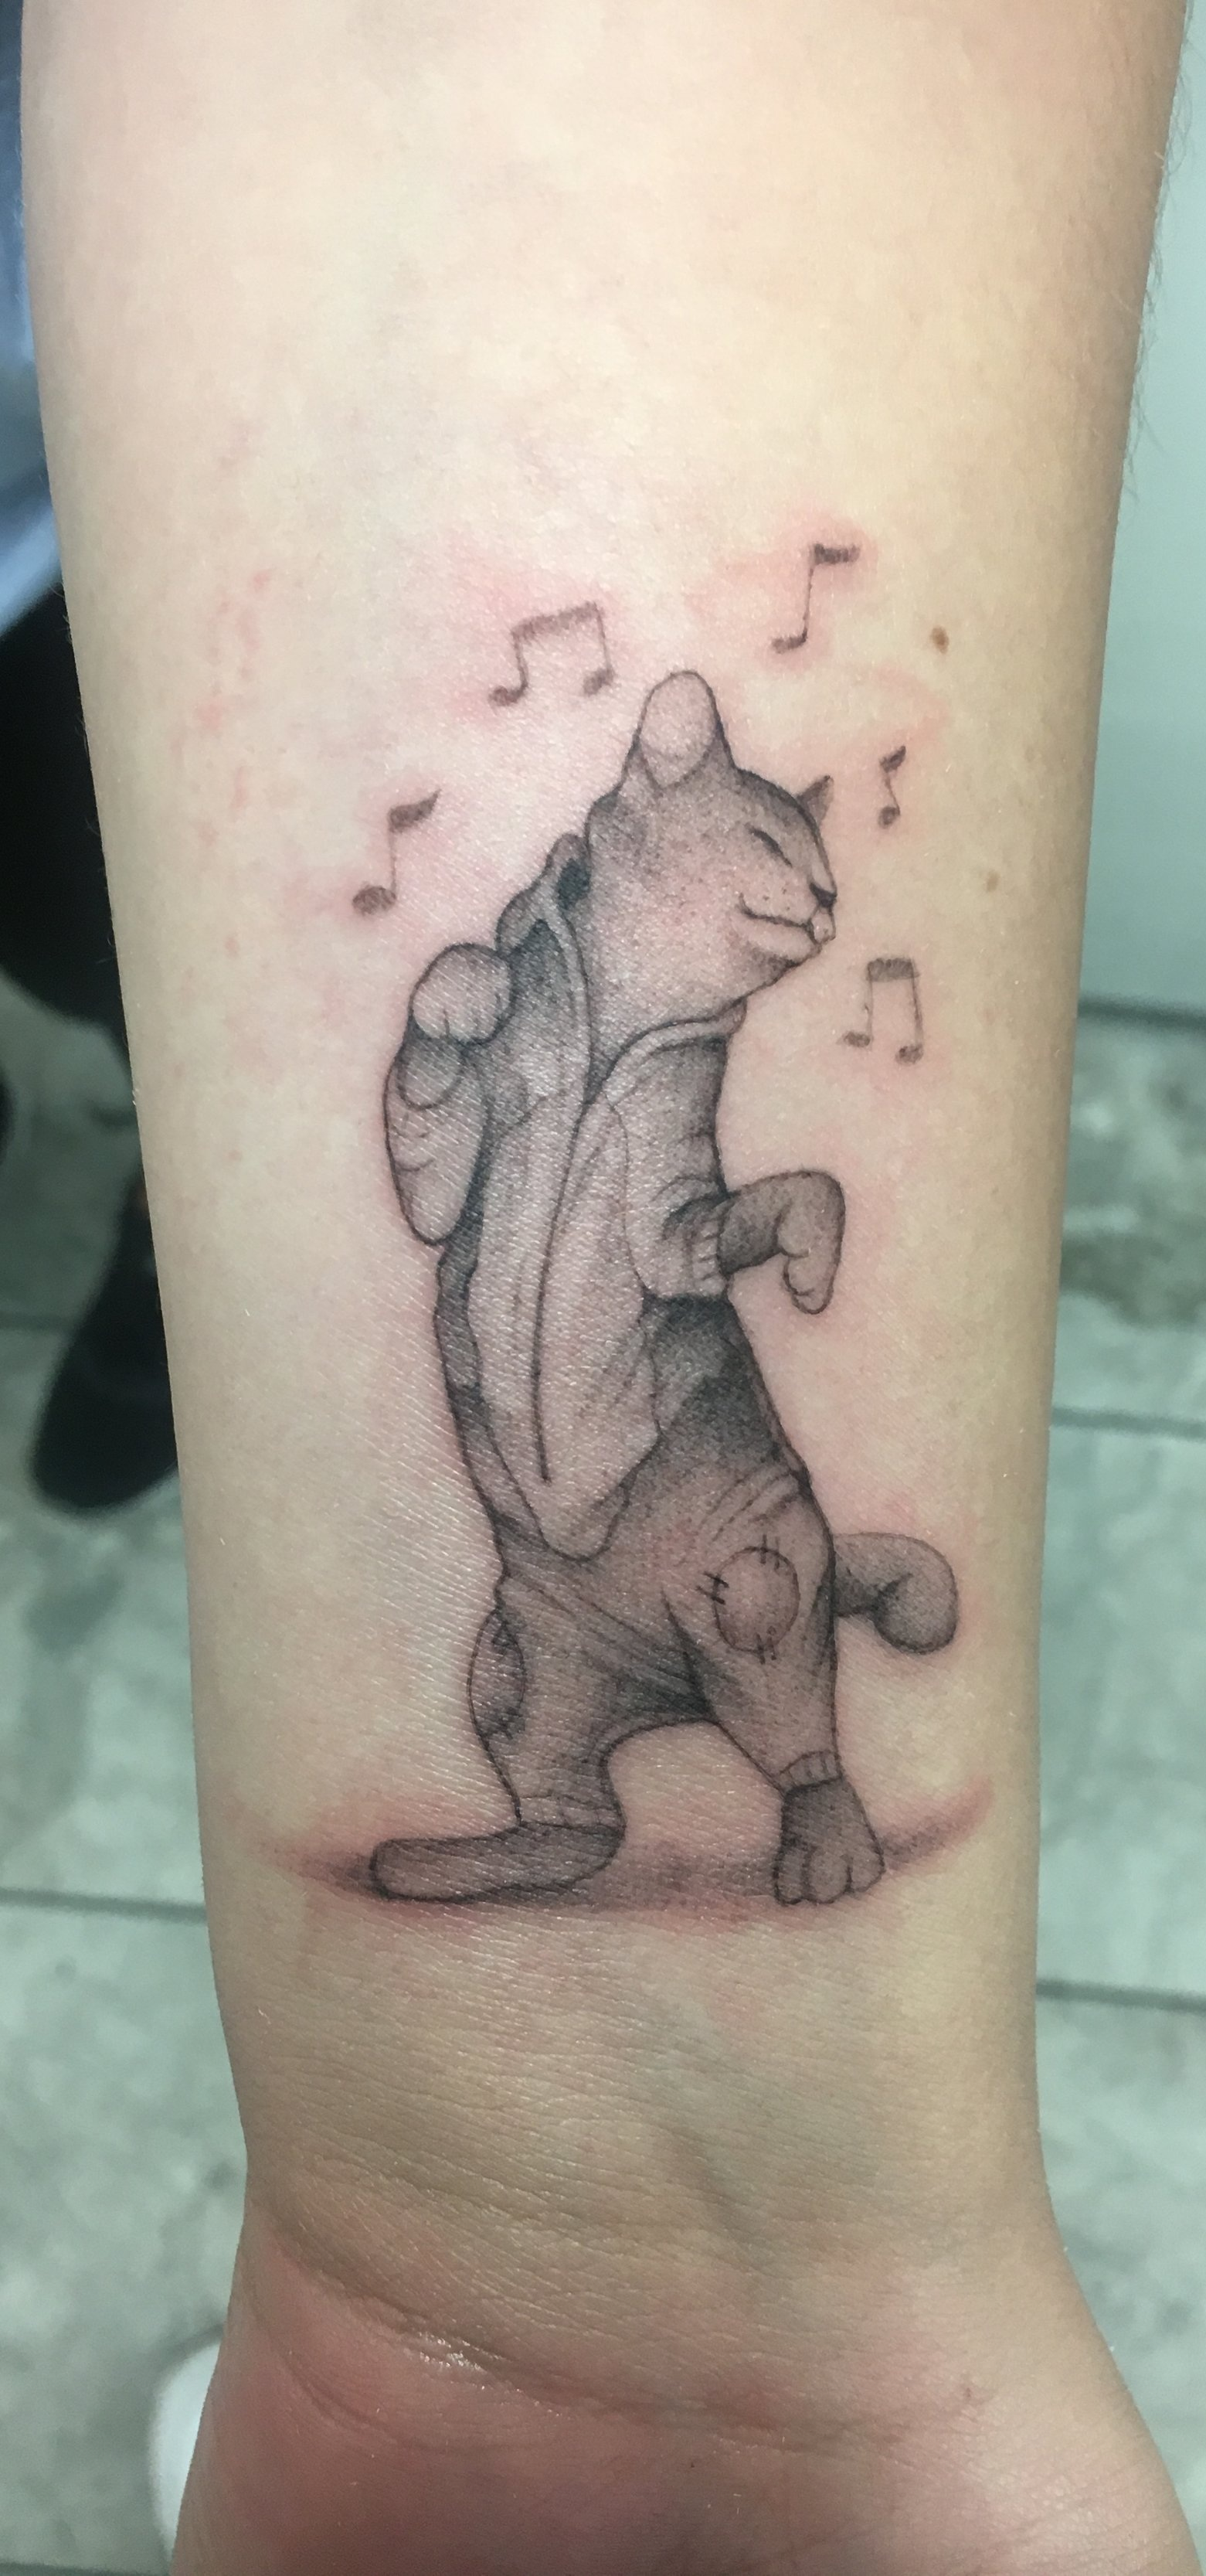 Custom Black Work Dancing Cat Tattoo by  BJ at Certified Tattoo Studios Denver Co  (1).JPG